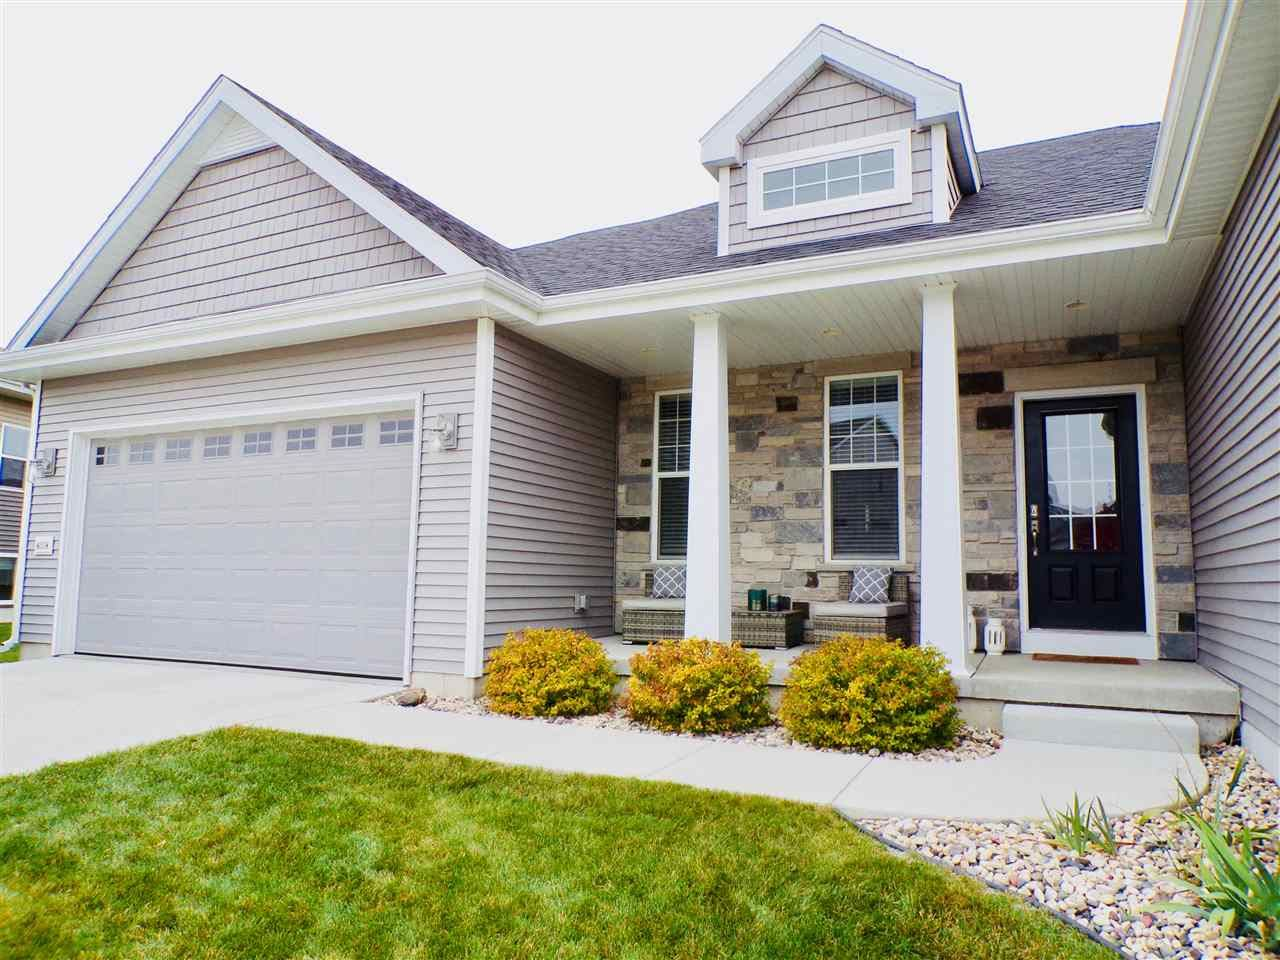 Photo for 6038 E Linden PKWY, McFarland, WI 53558 (MLS # 1906752)